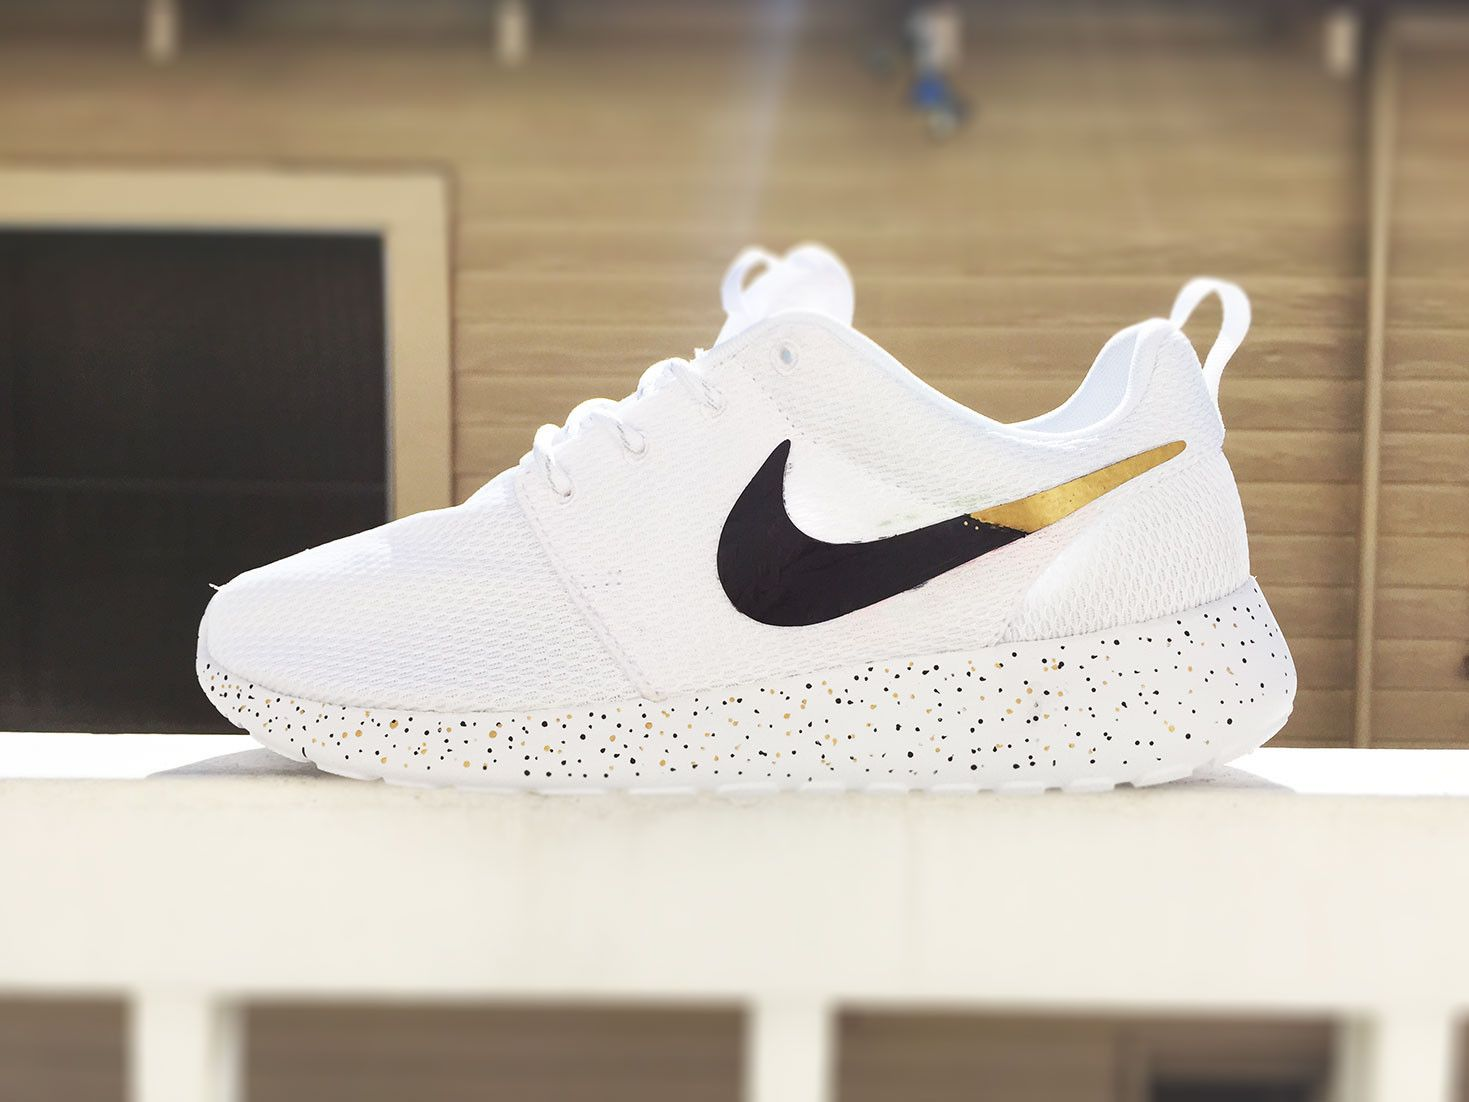 huge discount cf57b c969d Custom Nike Roshe Run sneakers for women, All white, Black and Gold,  Silver, specles, gold flakes, love, fashionable design